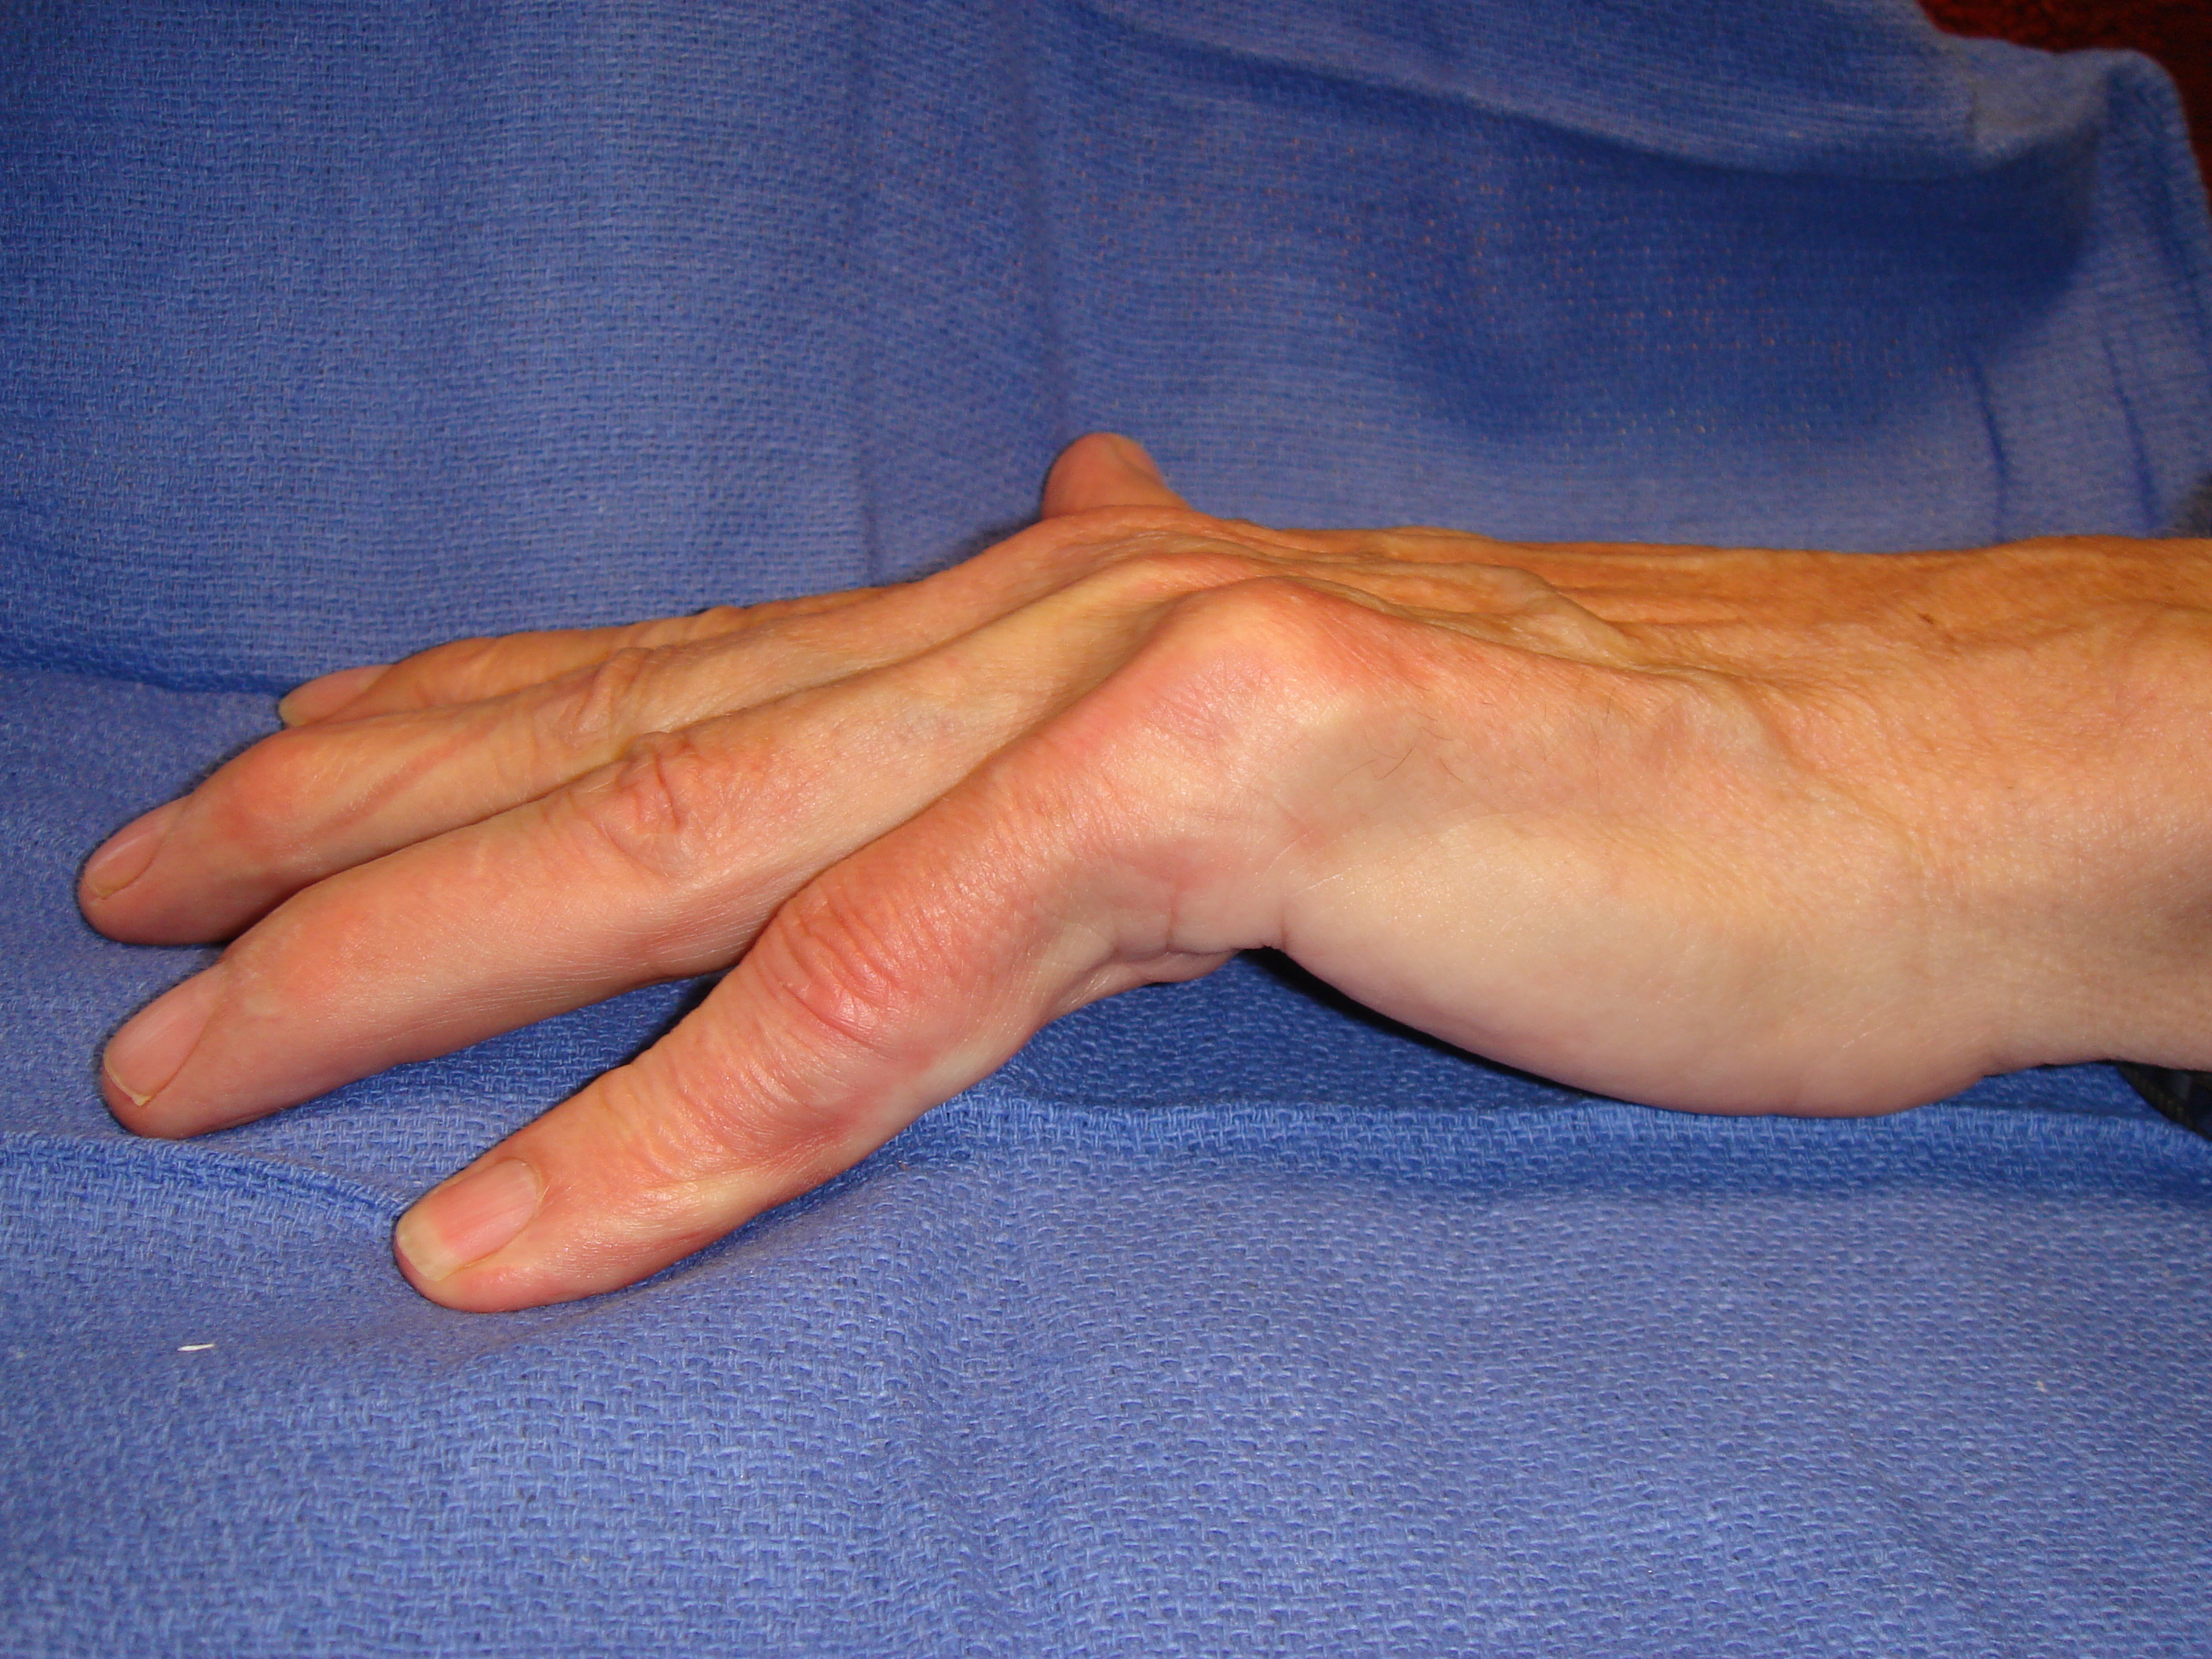 Image 4b: This ~70-year-old male had no family history of Dupuytren's. There is a problematic cord, seen primarily in the fifth ray and that crossed towards the ring finger web.